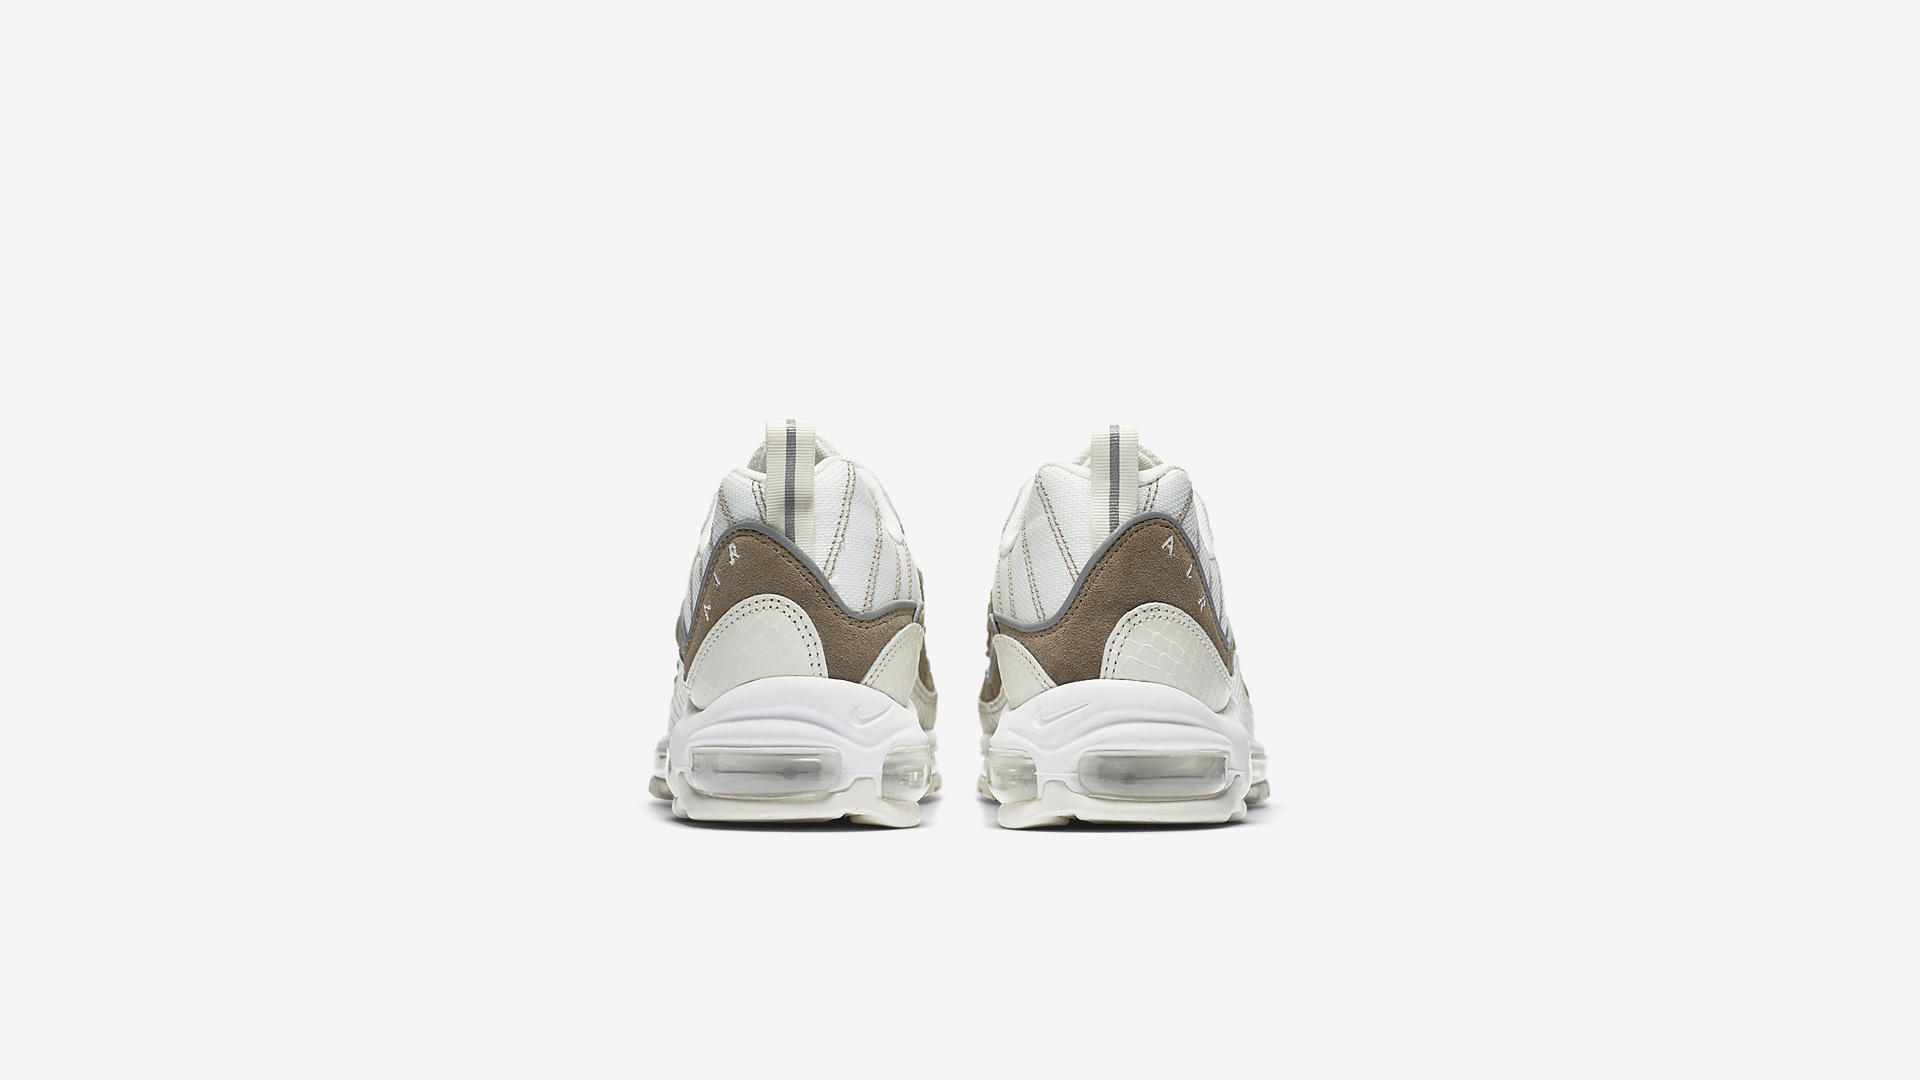 AO9380 100 Nike Air Max 98 Sail Cream 2